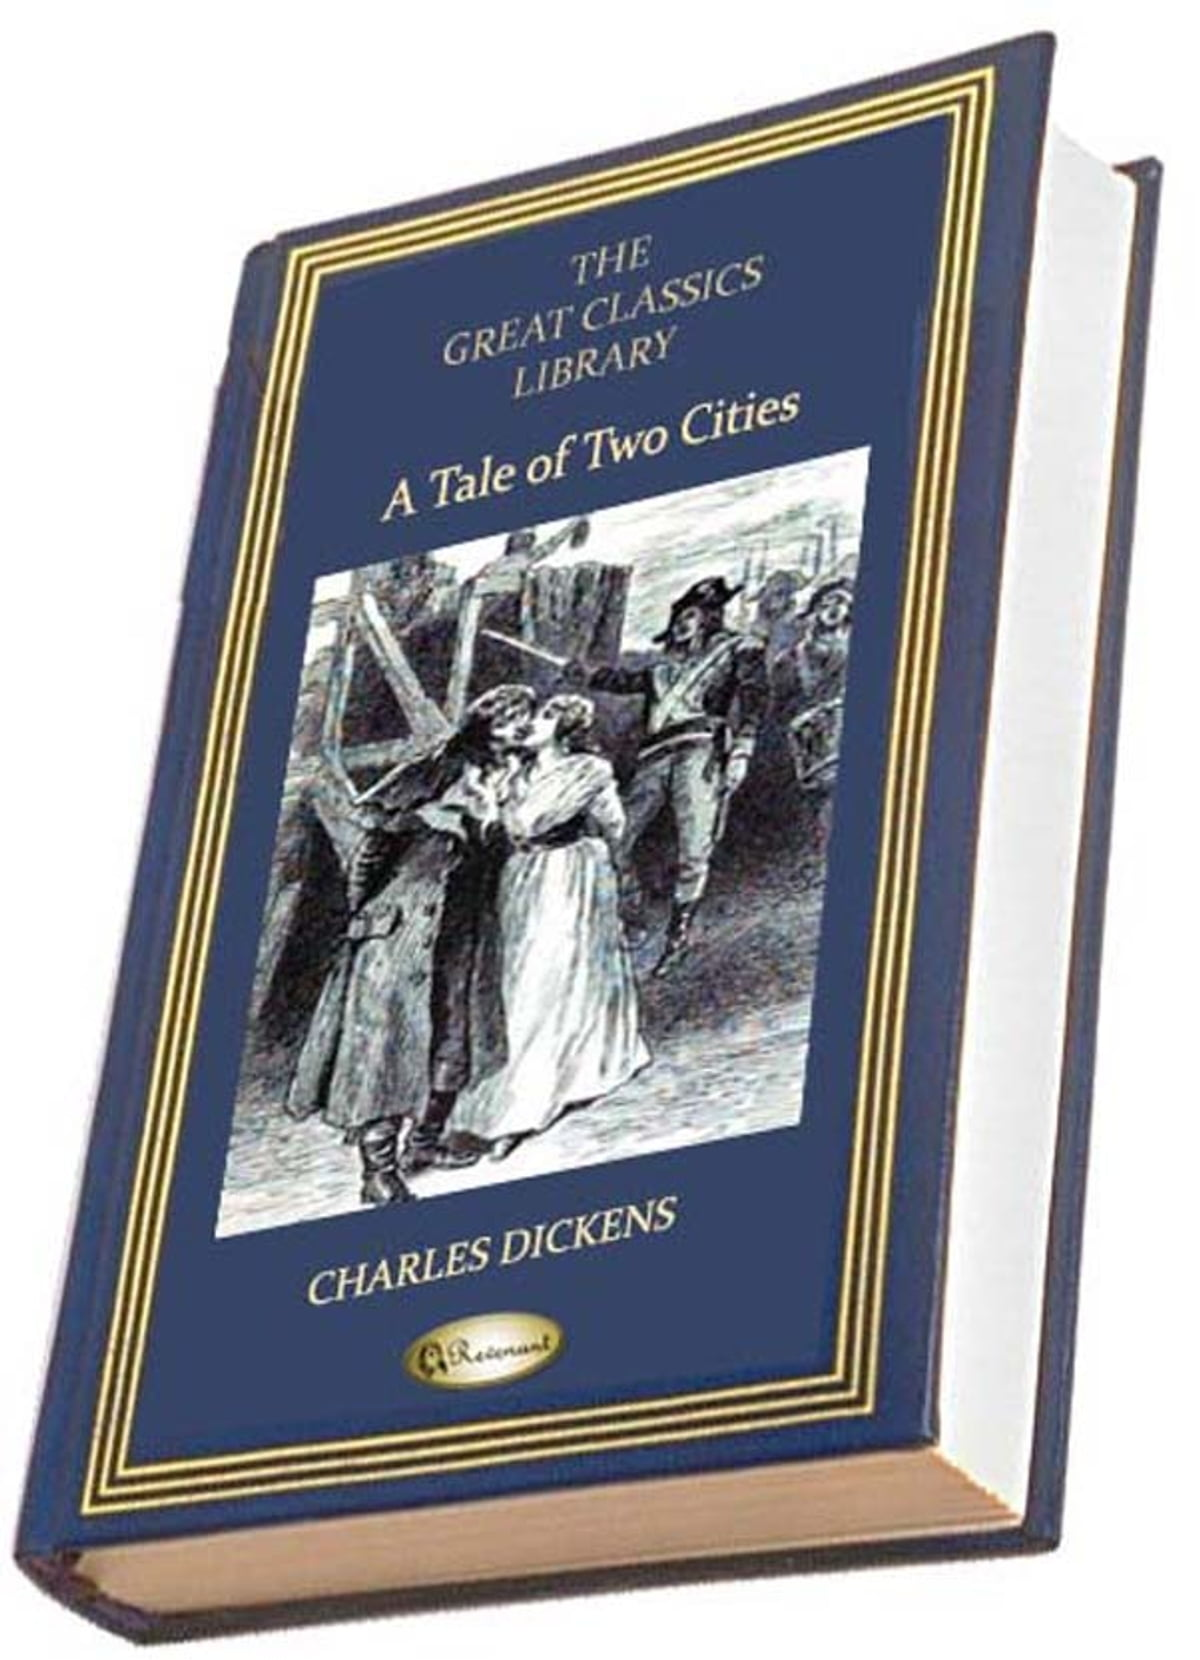 an analysis of social structures in a tale of two cities by charles dickens A tale of two cities charles dickens a year later, dickens went through his own form of social change as he was writing a tale of two cities: he separated from his wife, and he revitalized his career by making plans for a new weekly literary journal called all the year round.